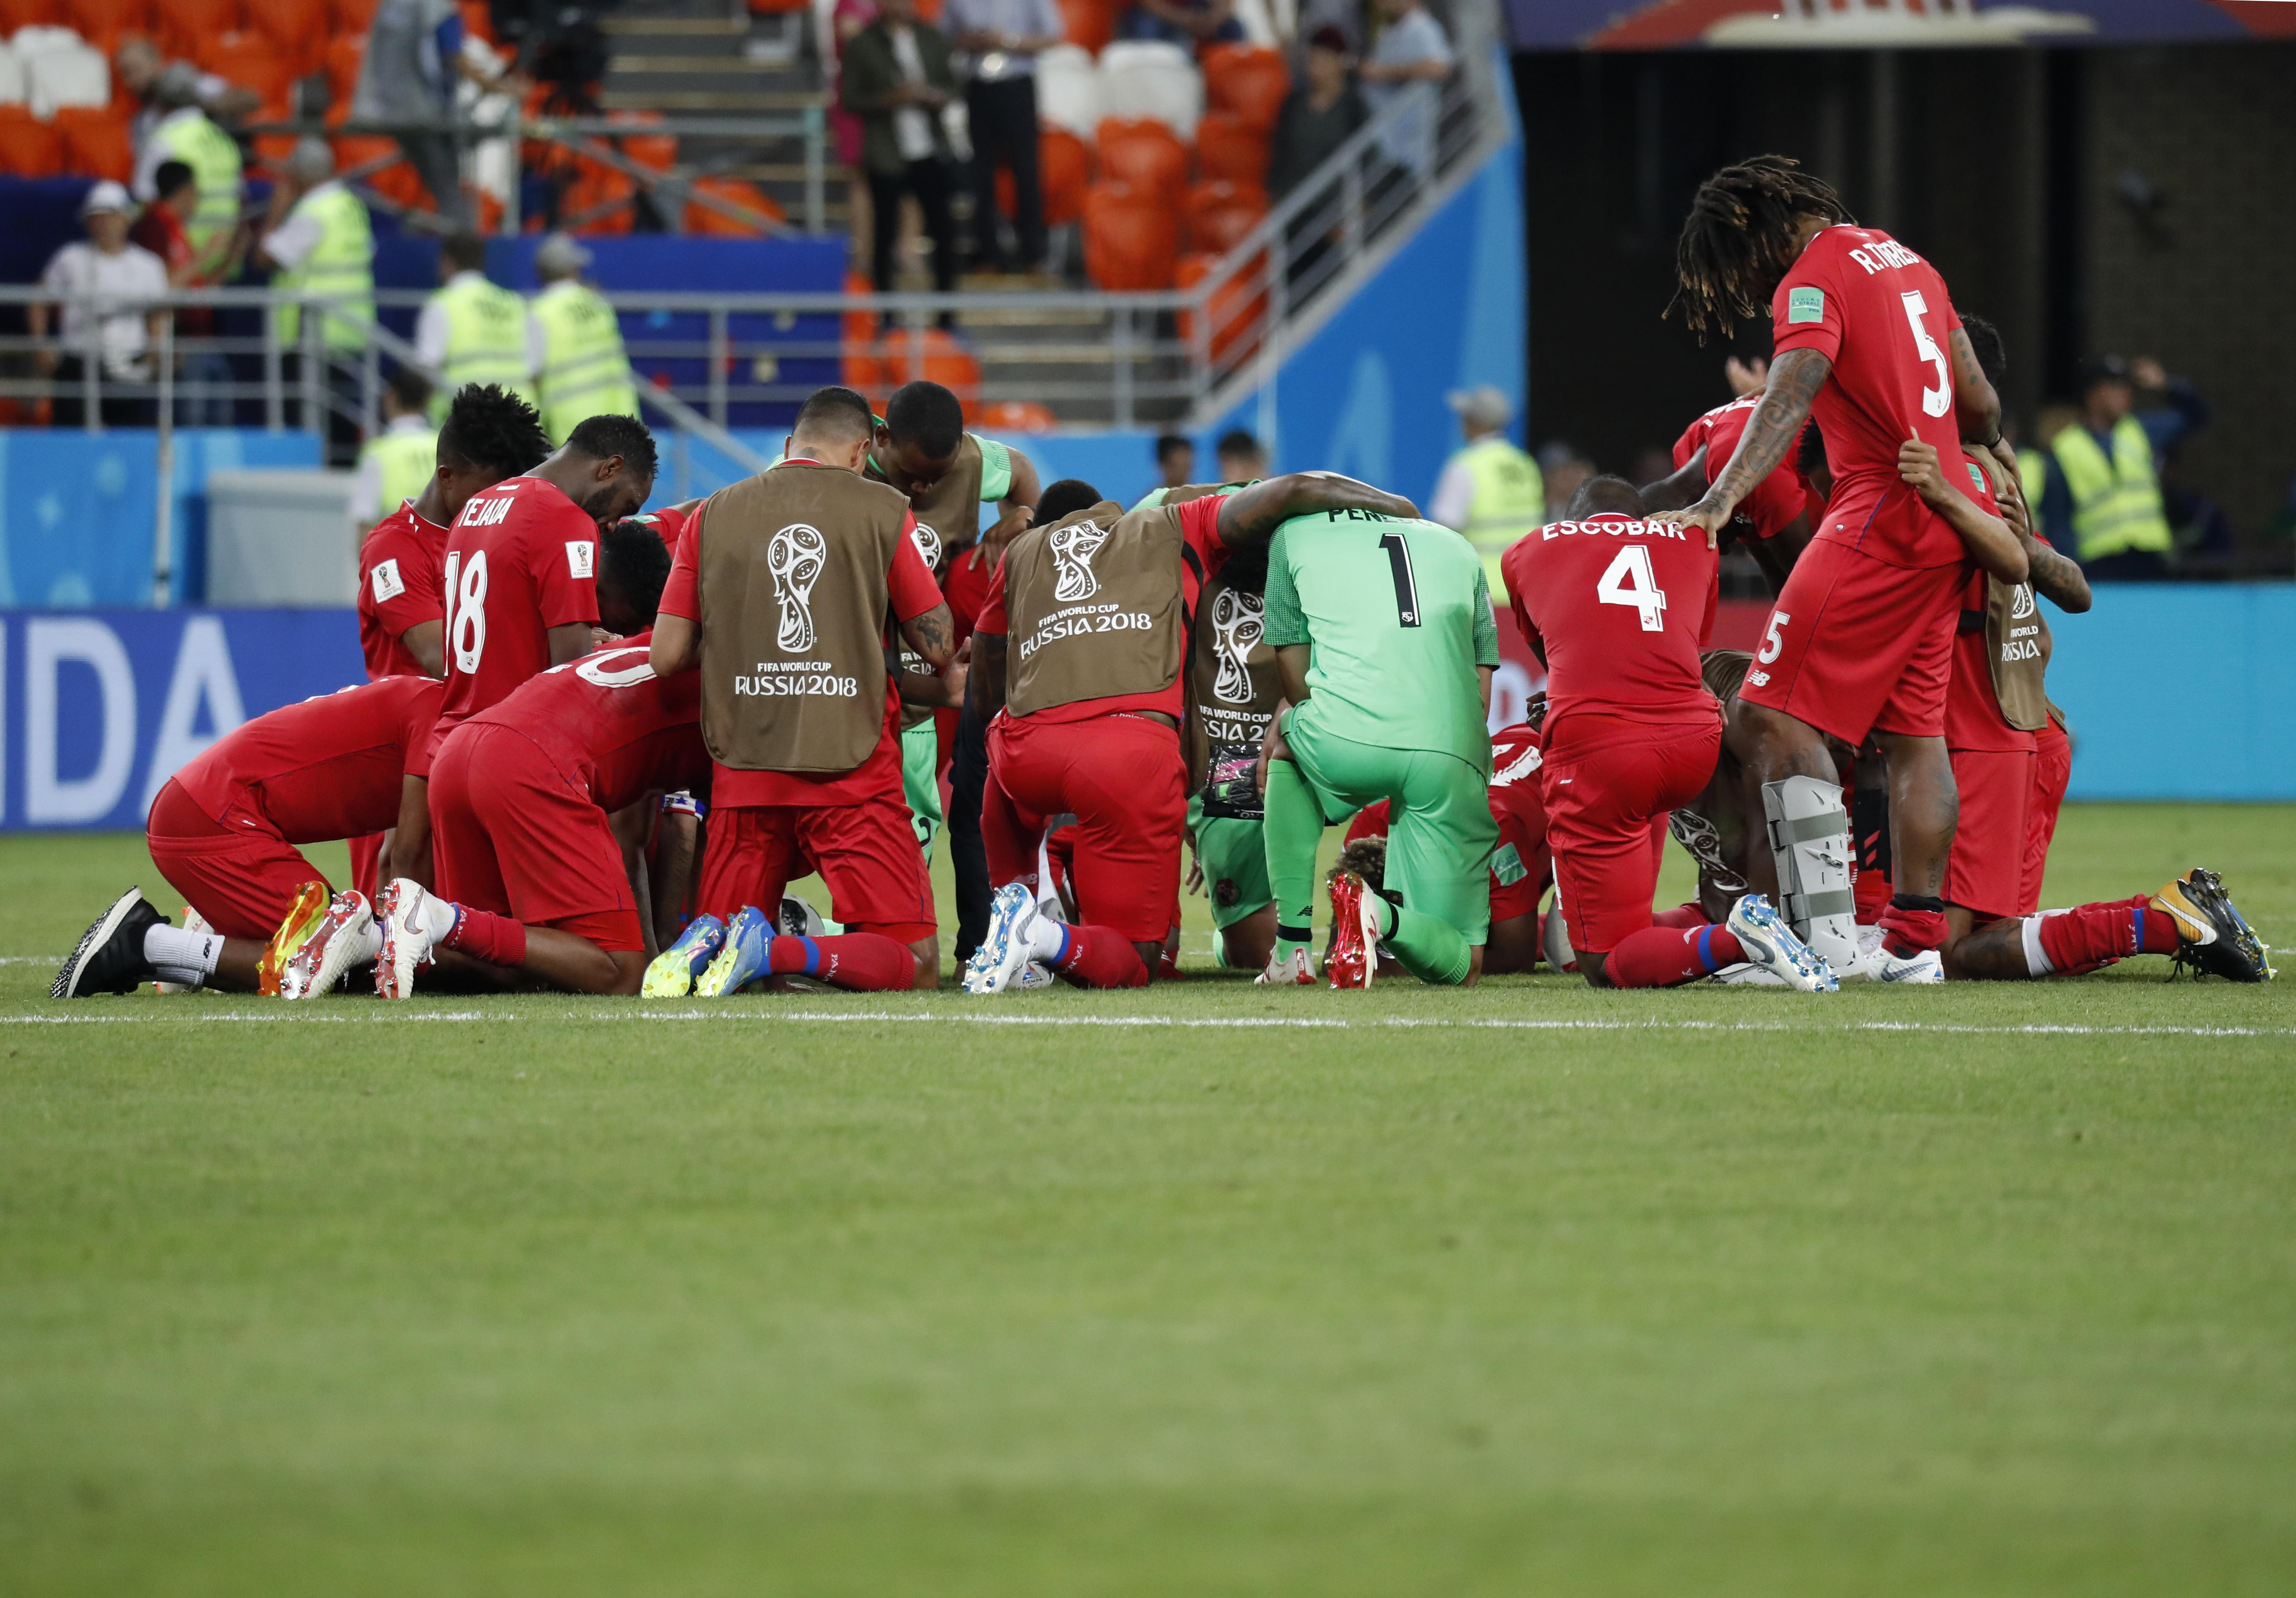 Panama coach gets mad after team called worst at World Cup | The